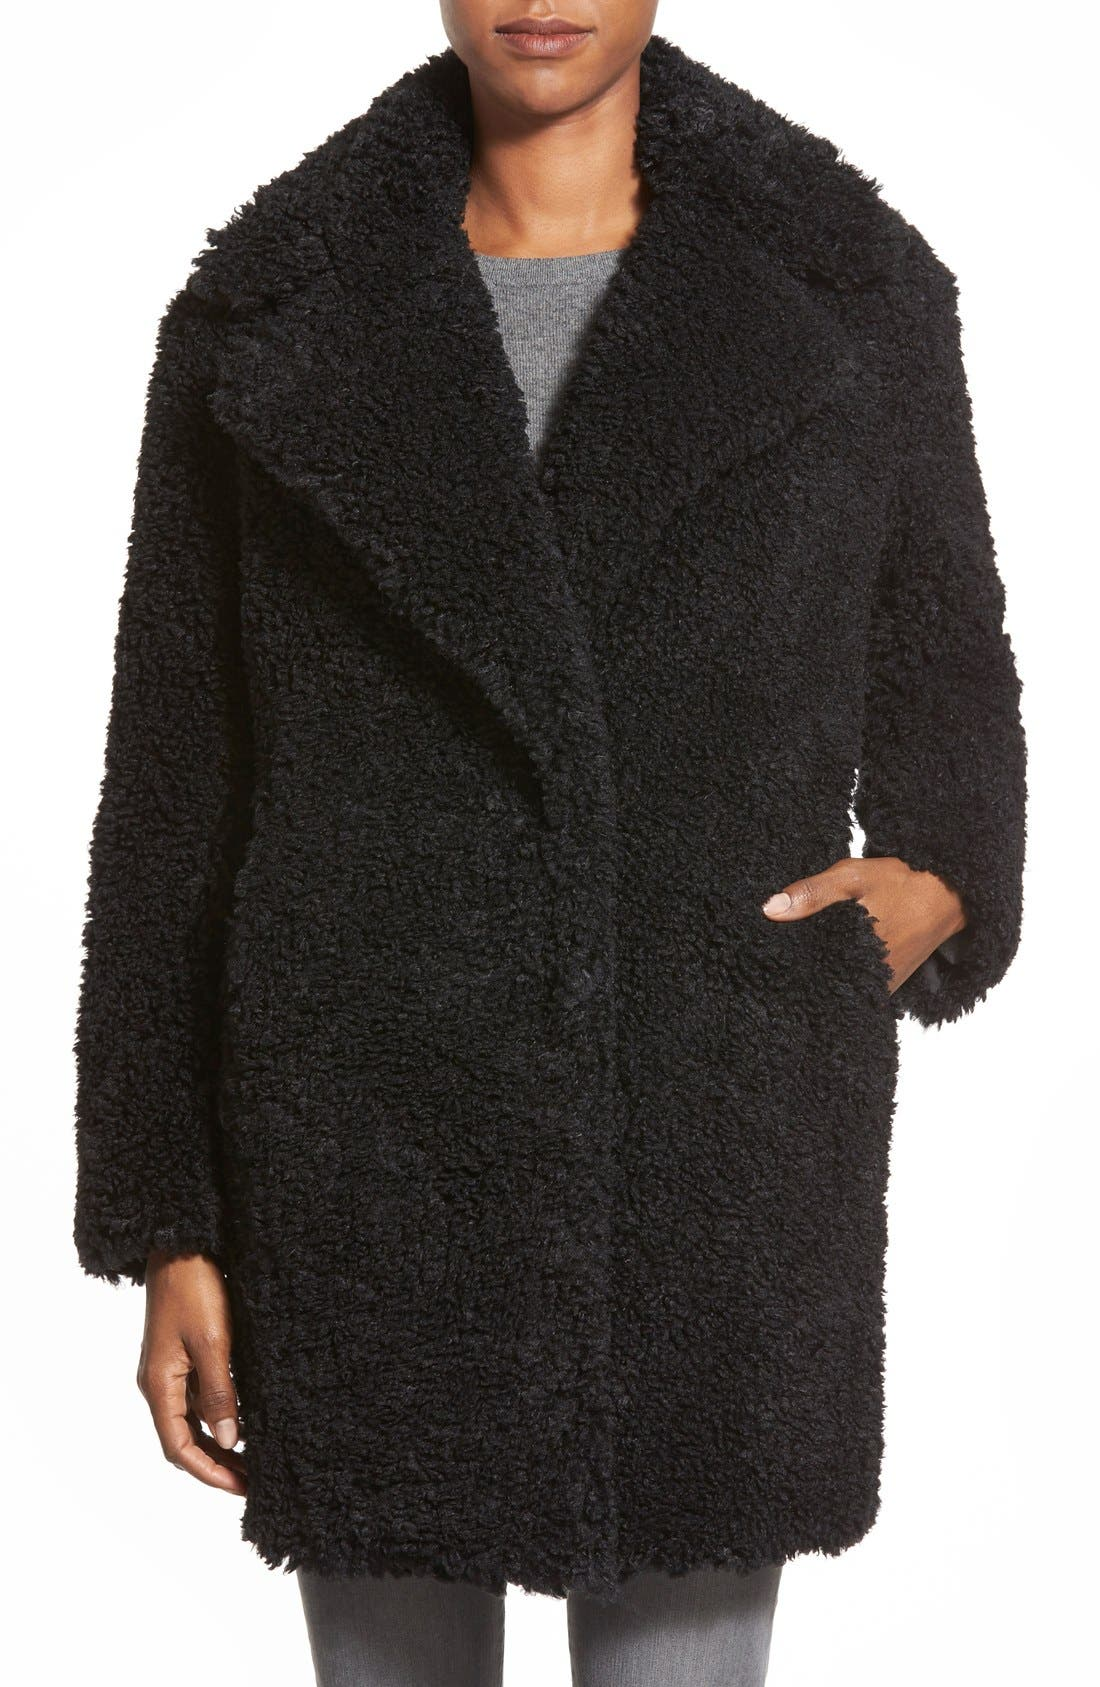 Alternate Image 1 Selected - kensie 'Teddy Bear' Notch Collar Reversible Faux Fur Coat (Online Only)